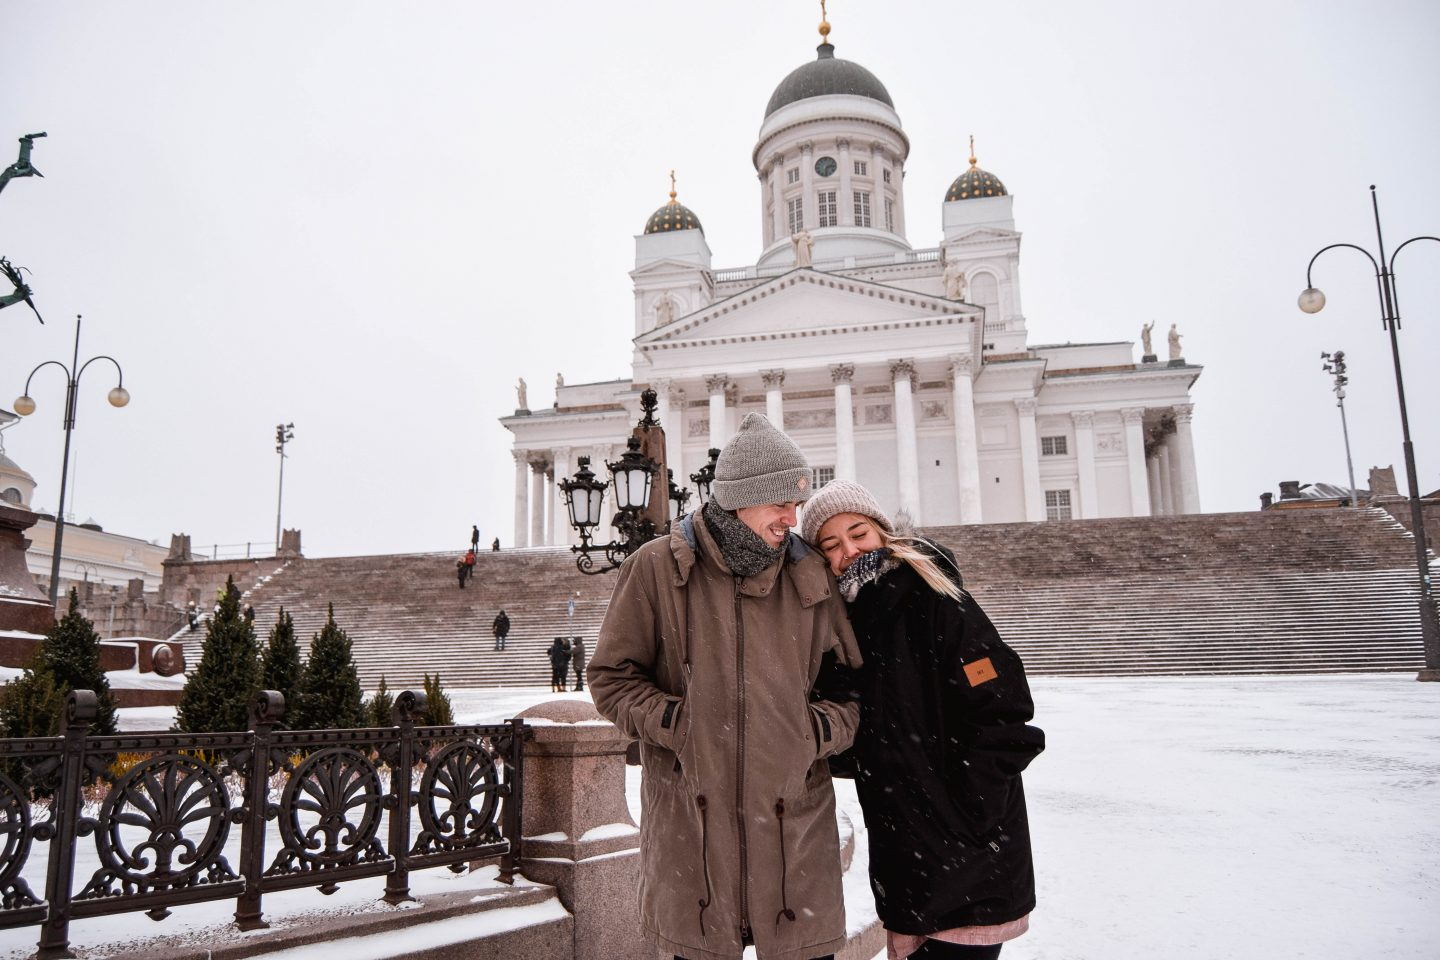 Senate Square Helsinki Cathedral Things To Do In Helsinki In Winter